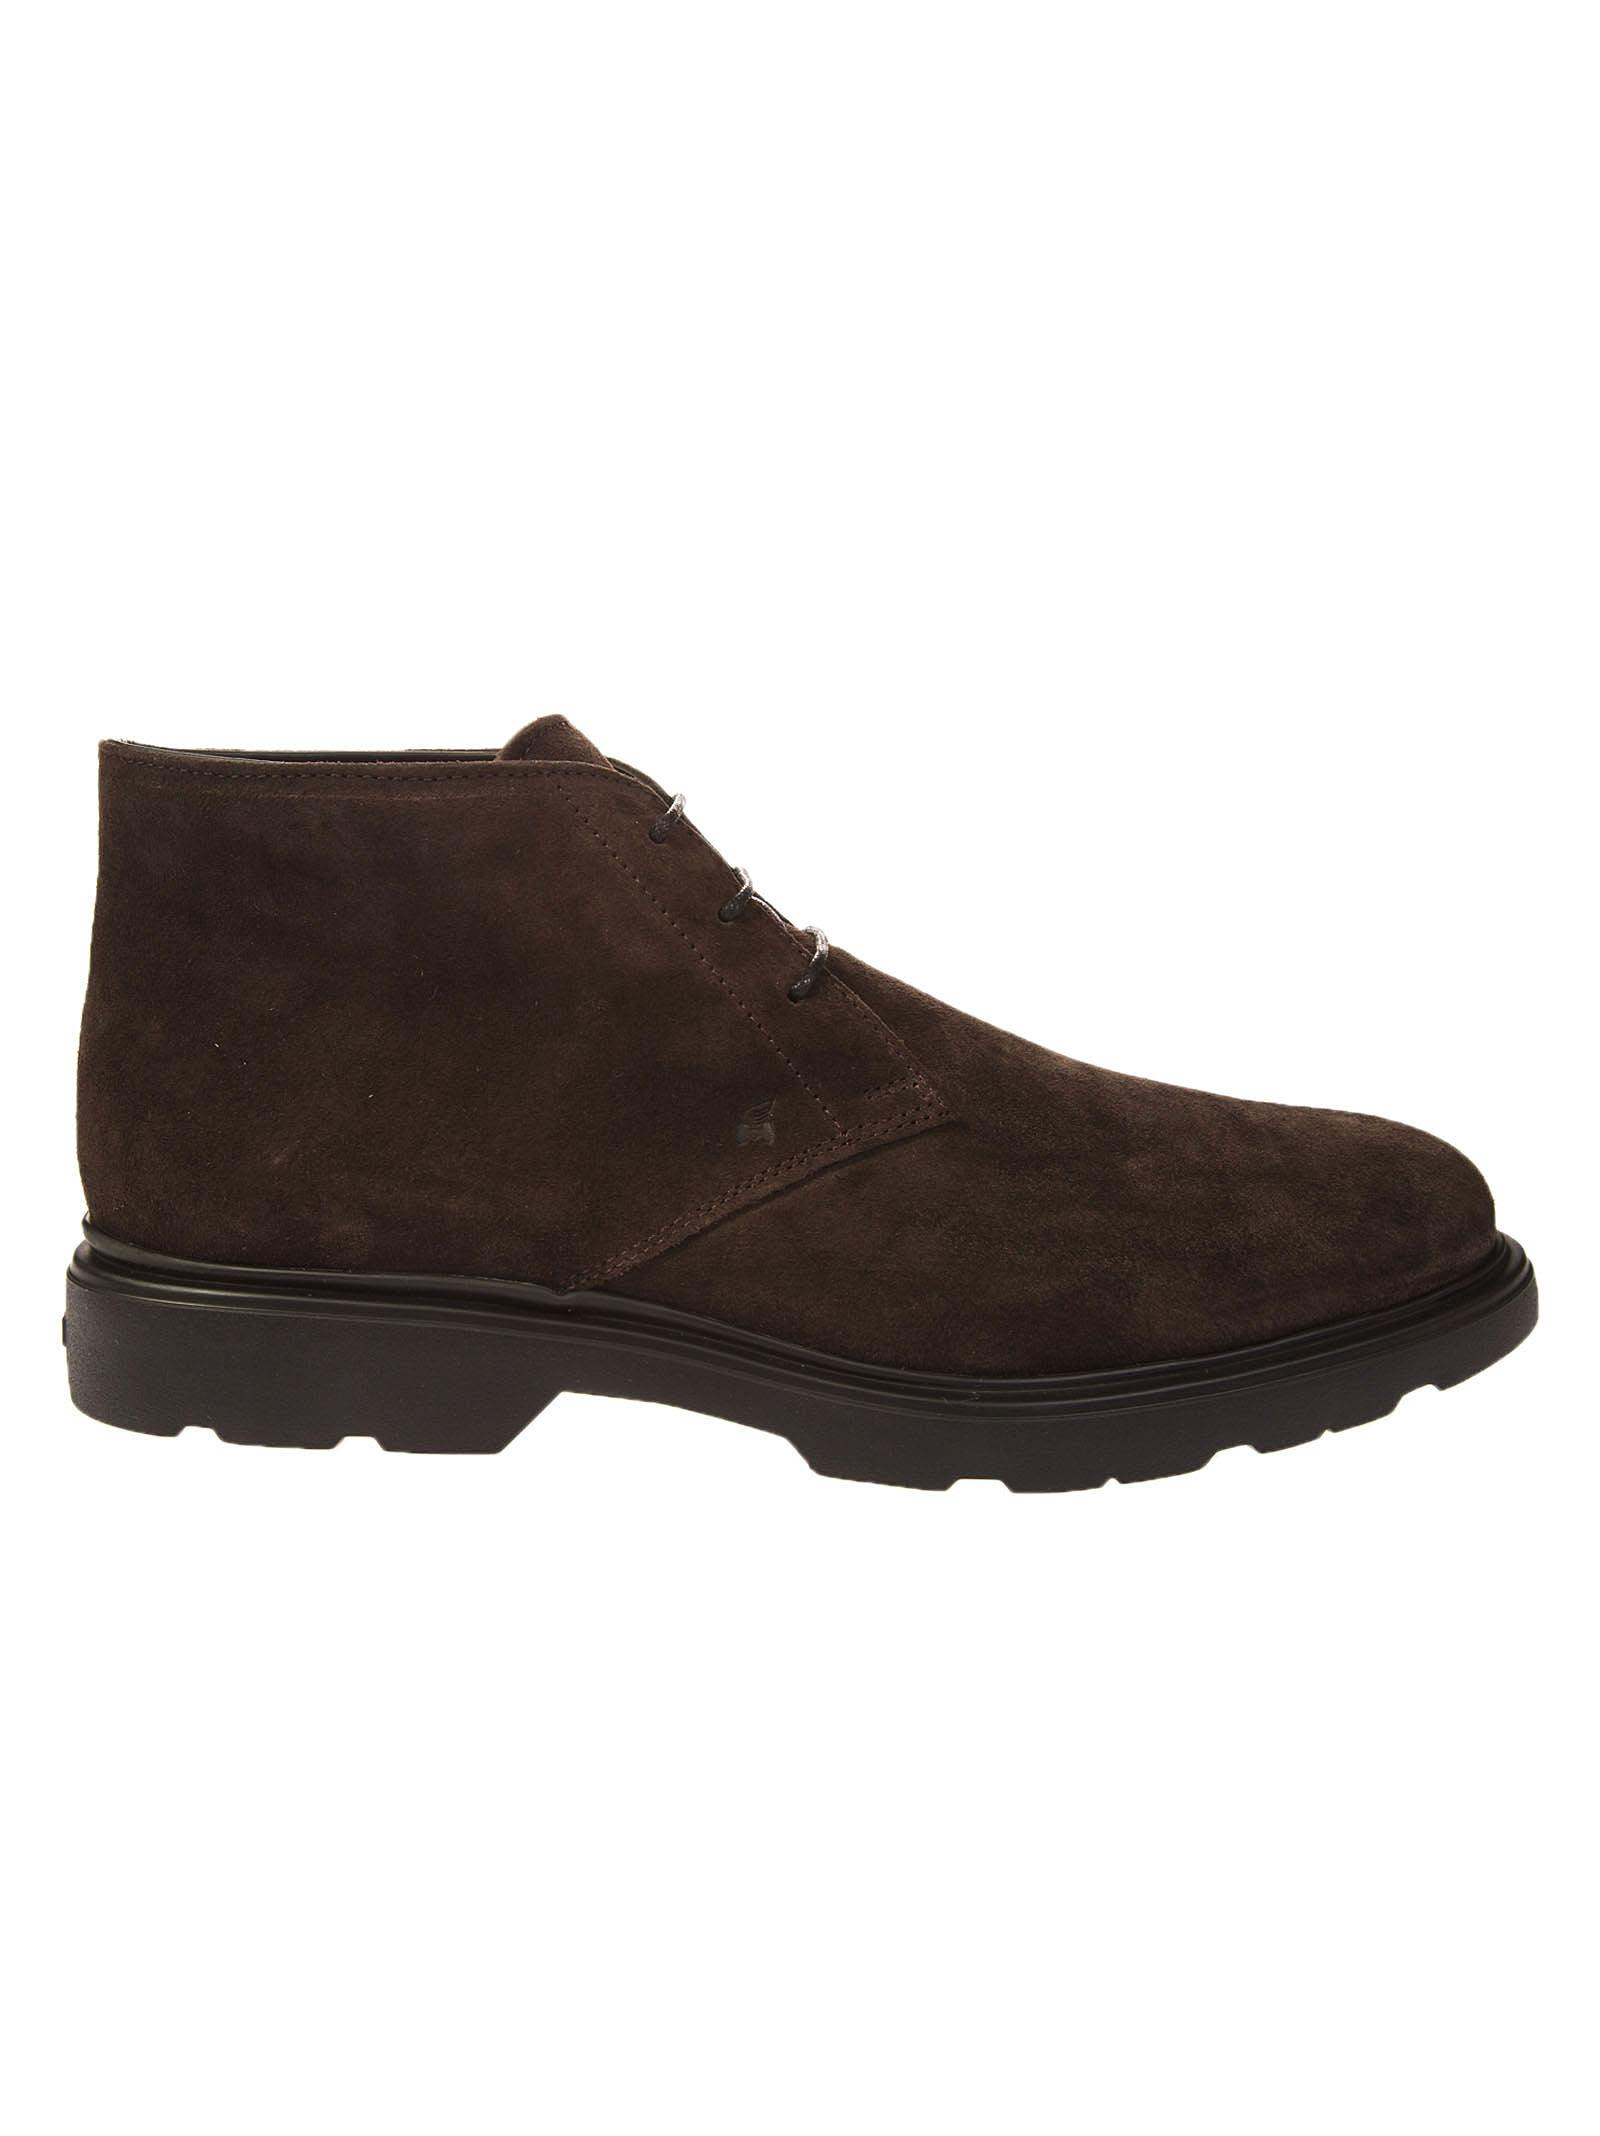 Hogan Route H304 Ankle Boots